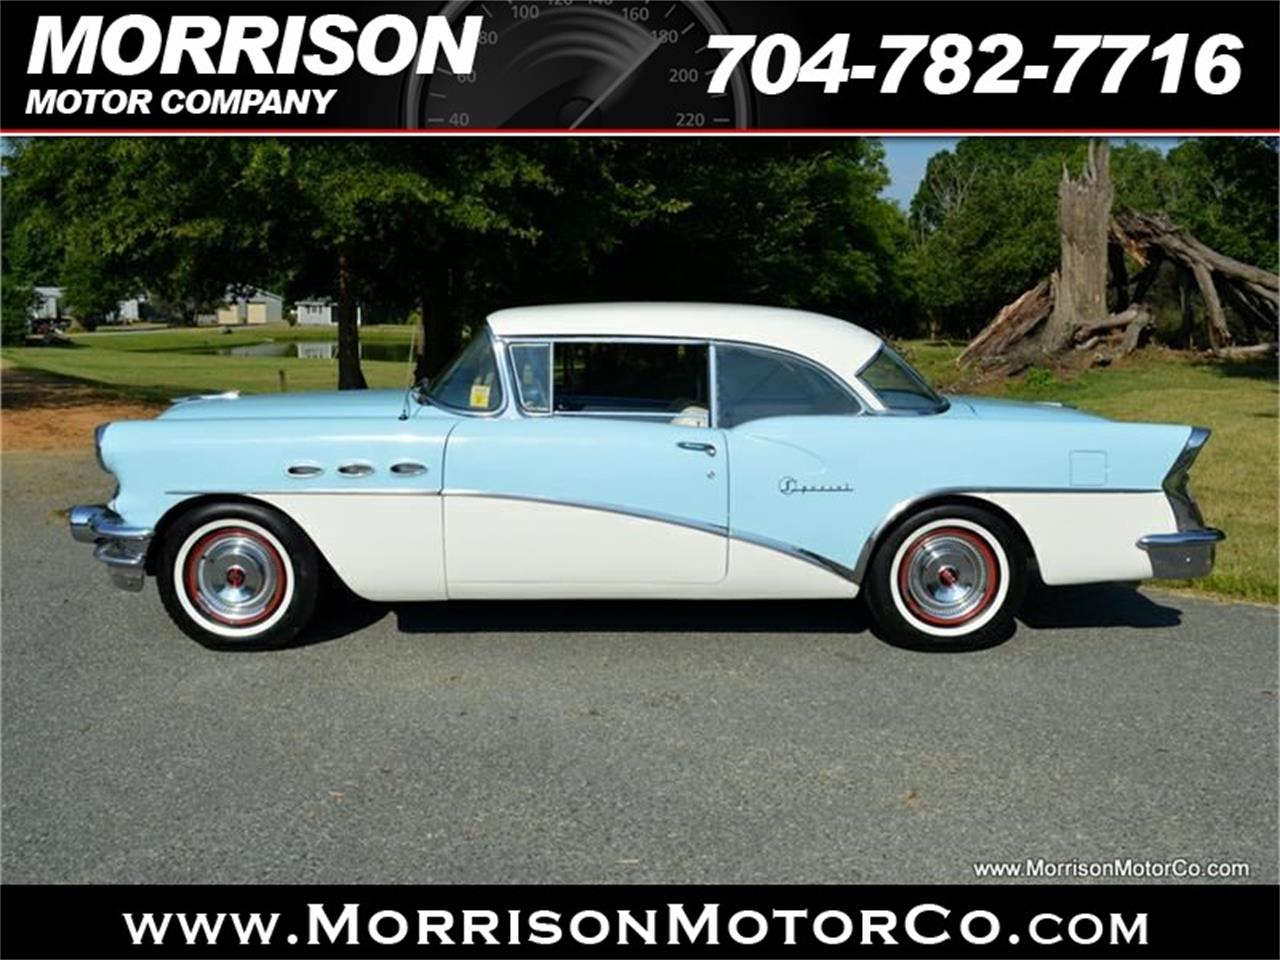 Large Picture of '56 Buick Special Riviera - $22,900.00 - M8P8